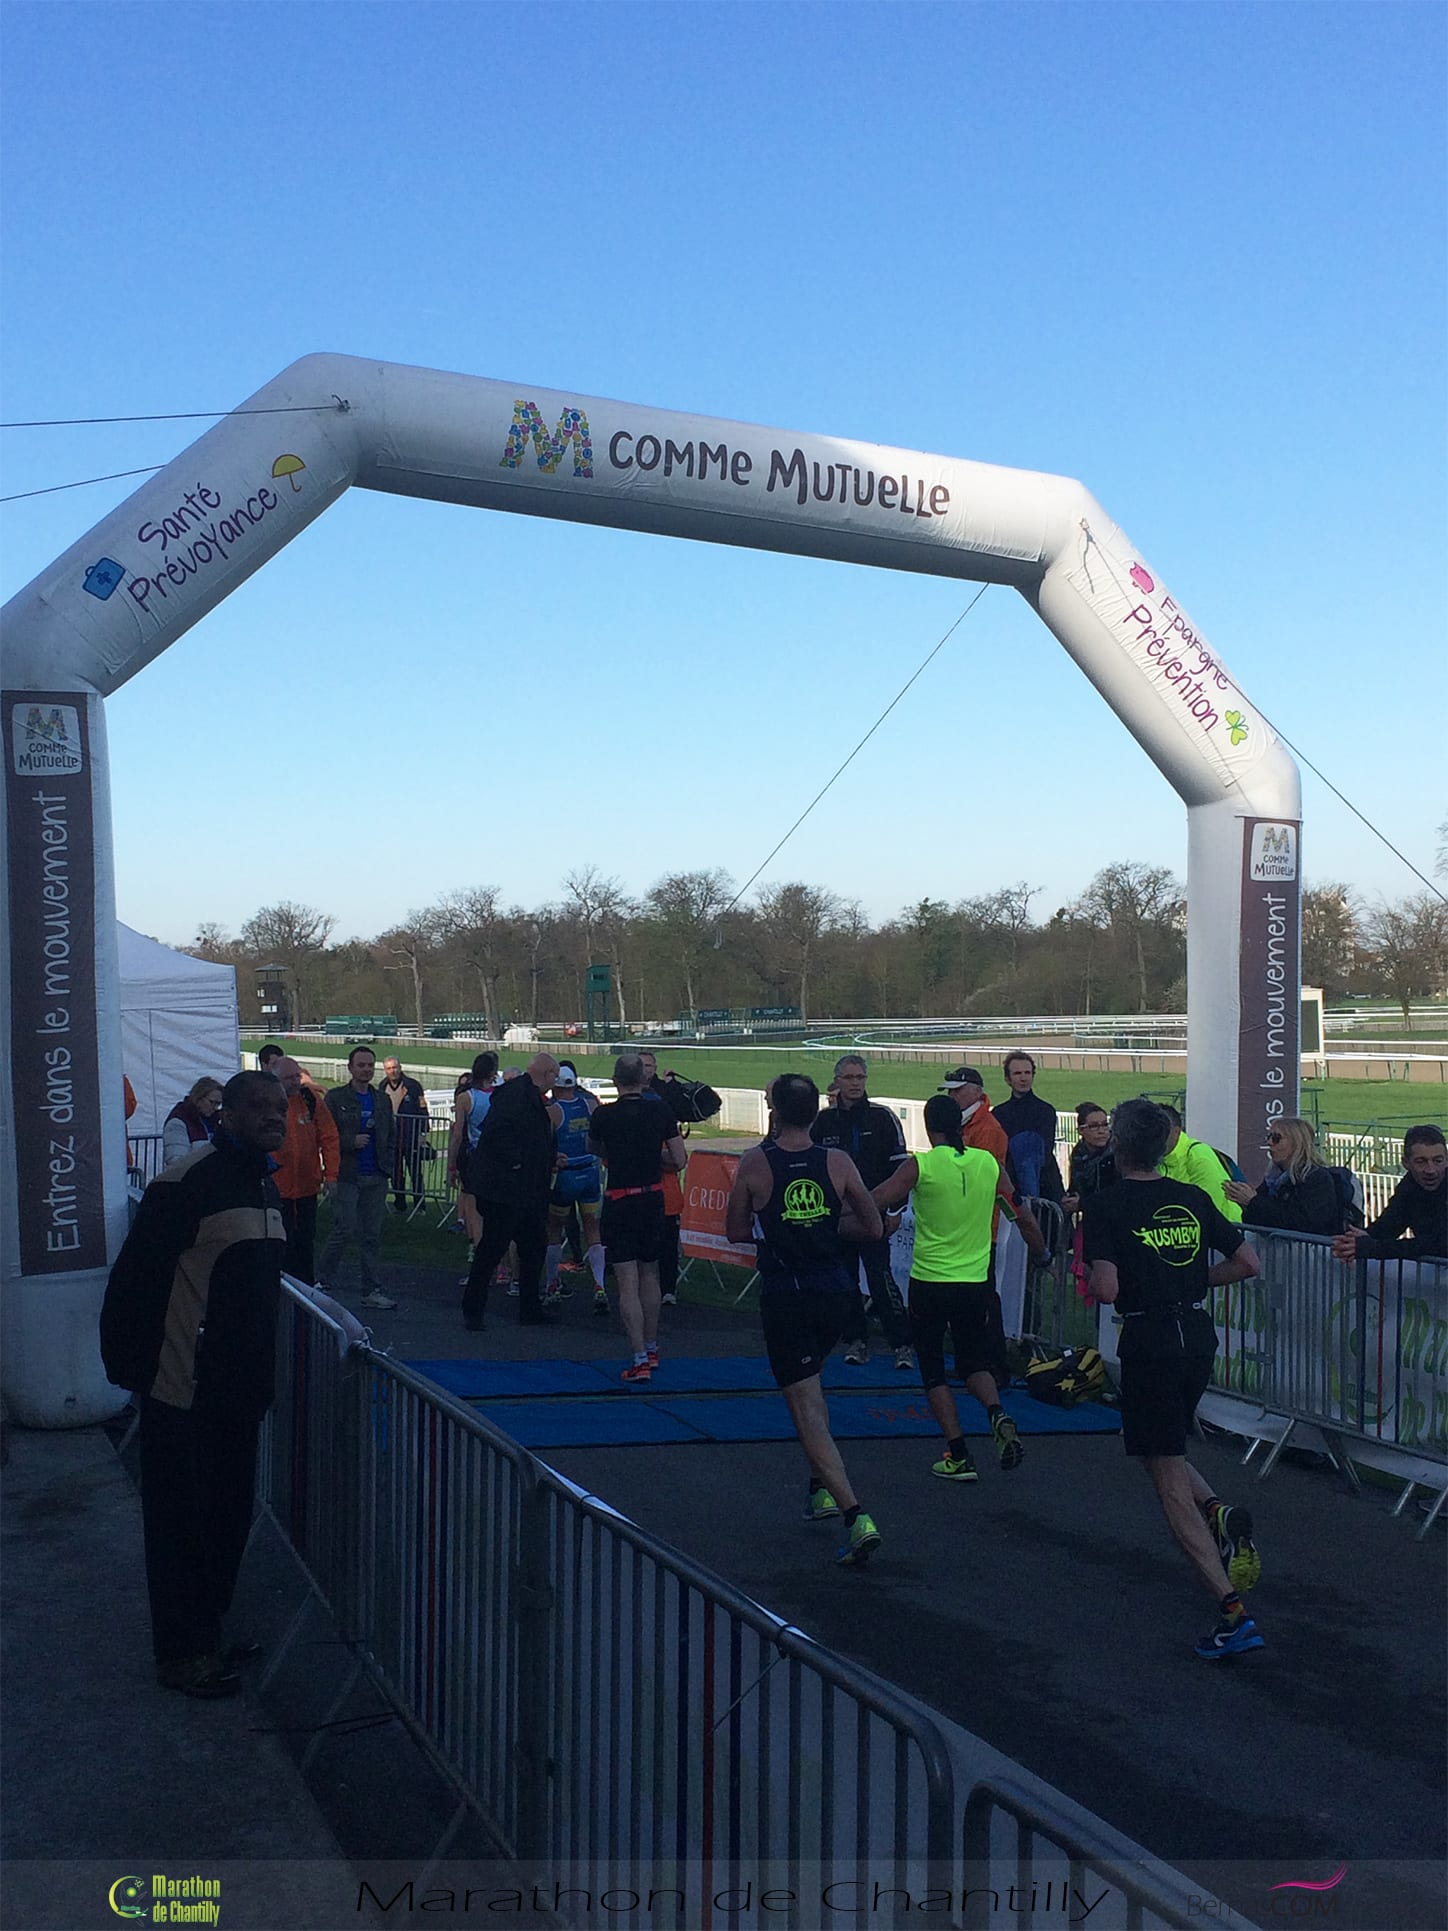 Marathon de Chantilly